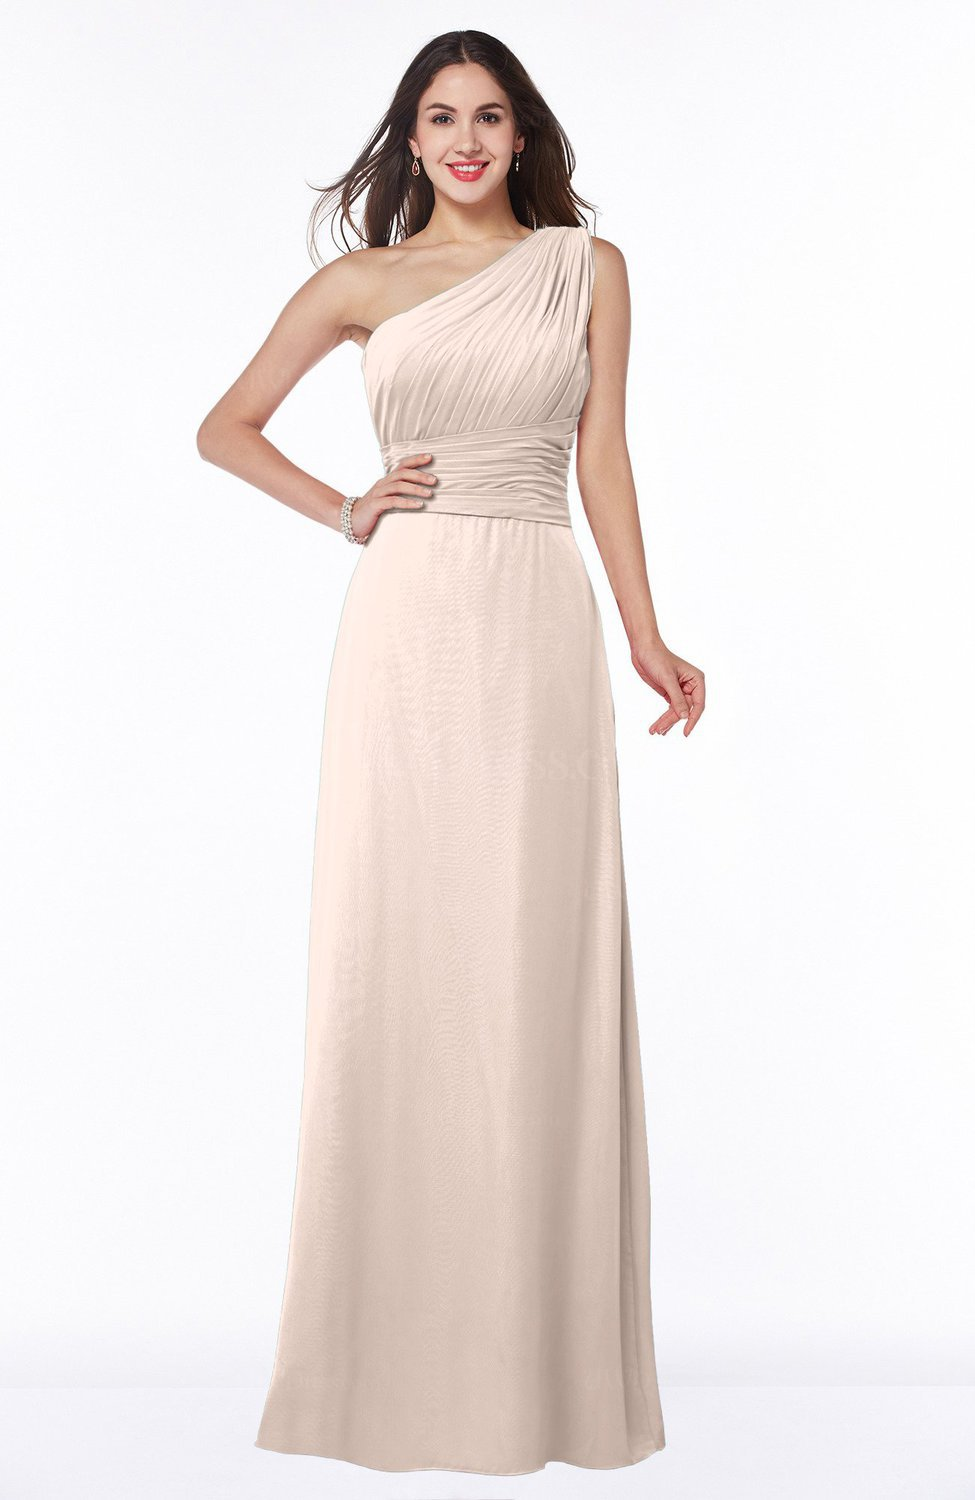 Silver Peony Elegant A-line Asymmetric Neckline Sleeveless Floor Length  Sash Plus Size Bridesmaid Dresses